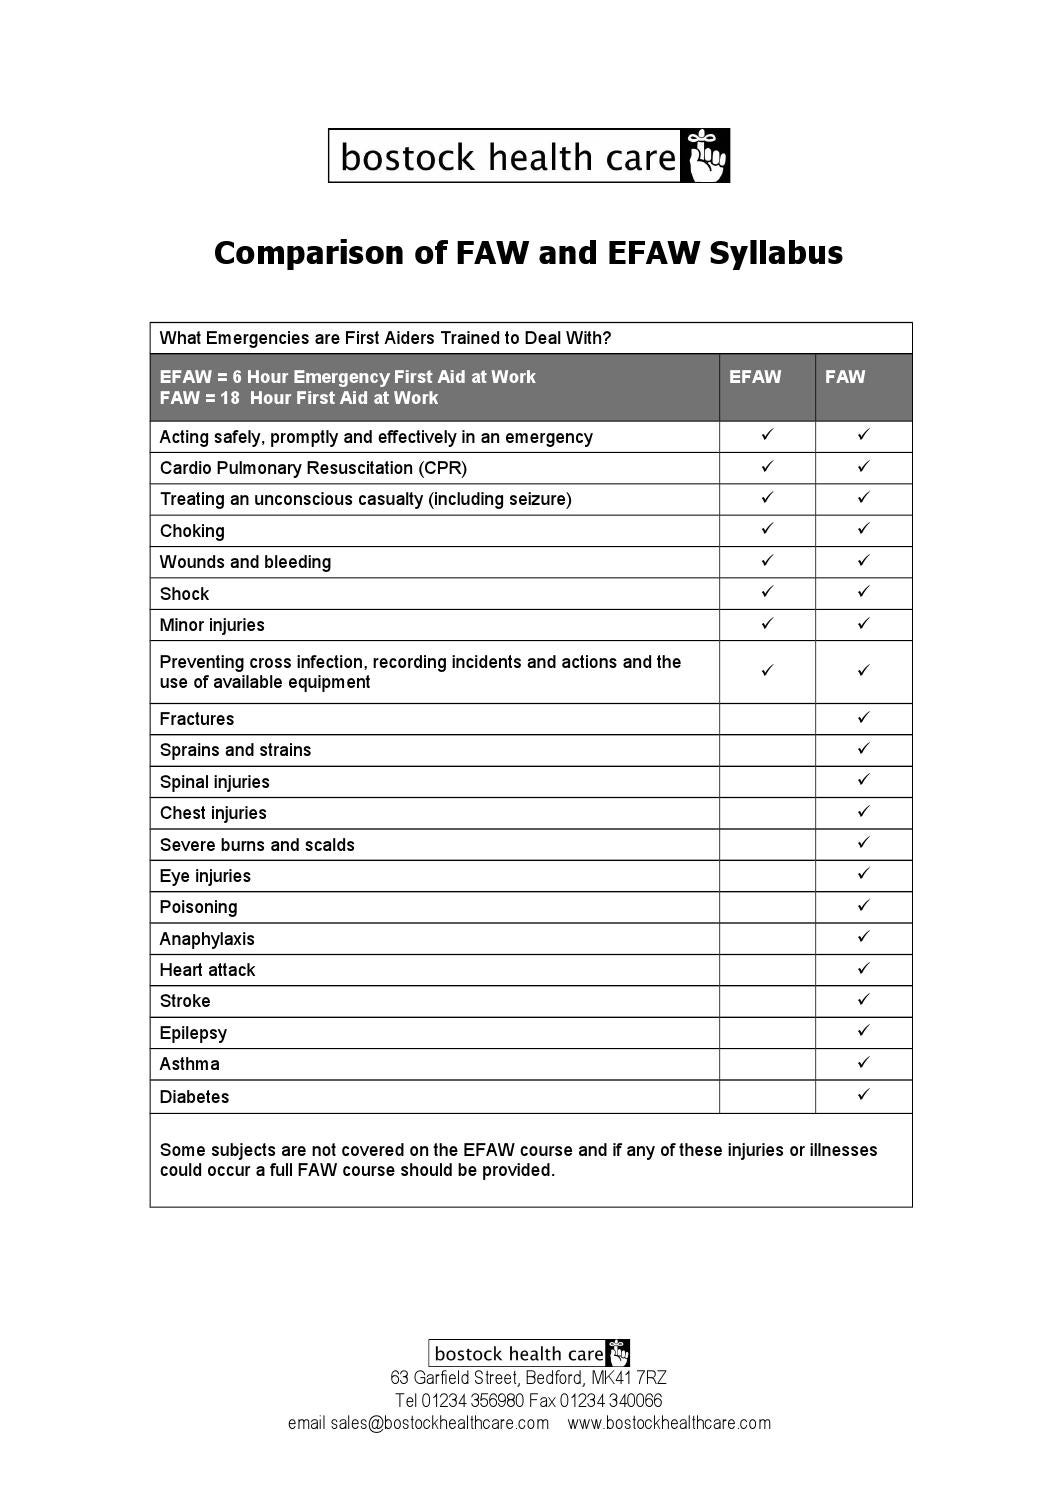 Comparison of faw and efaw syllabus by Bostock Health Care ...